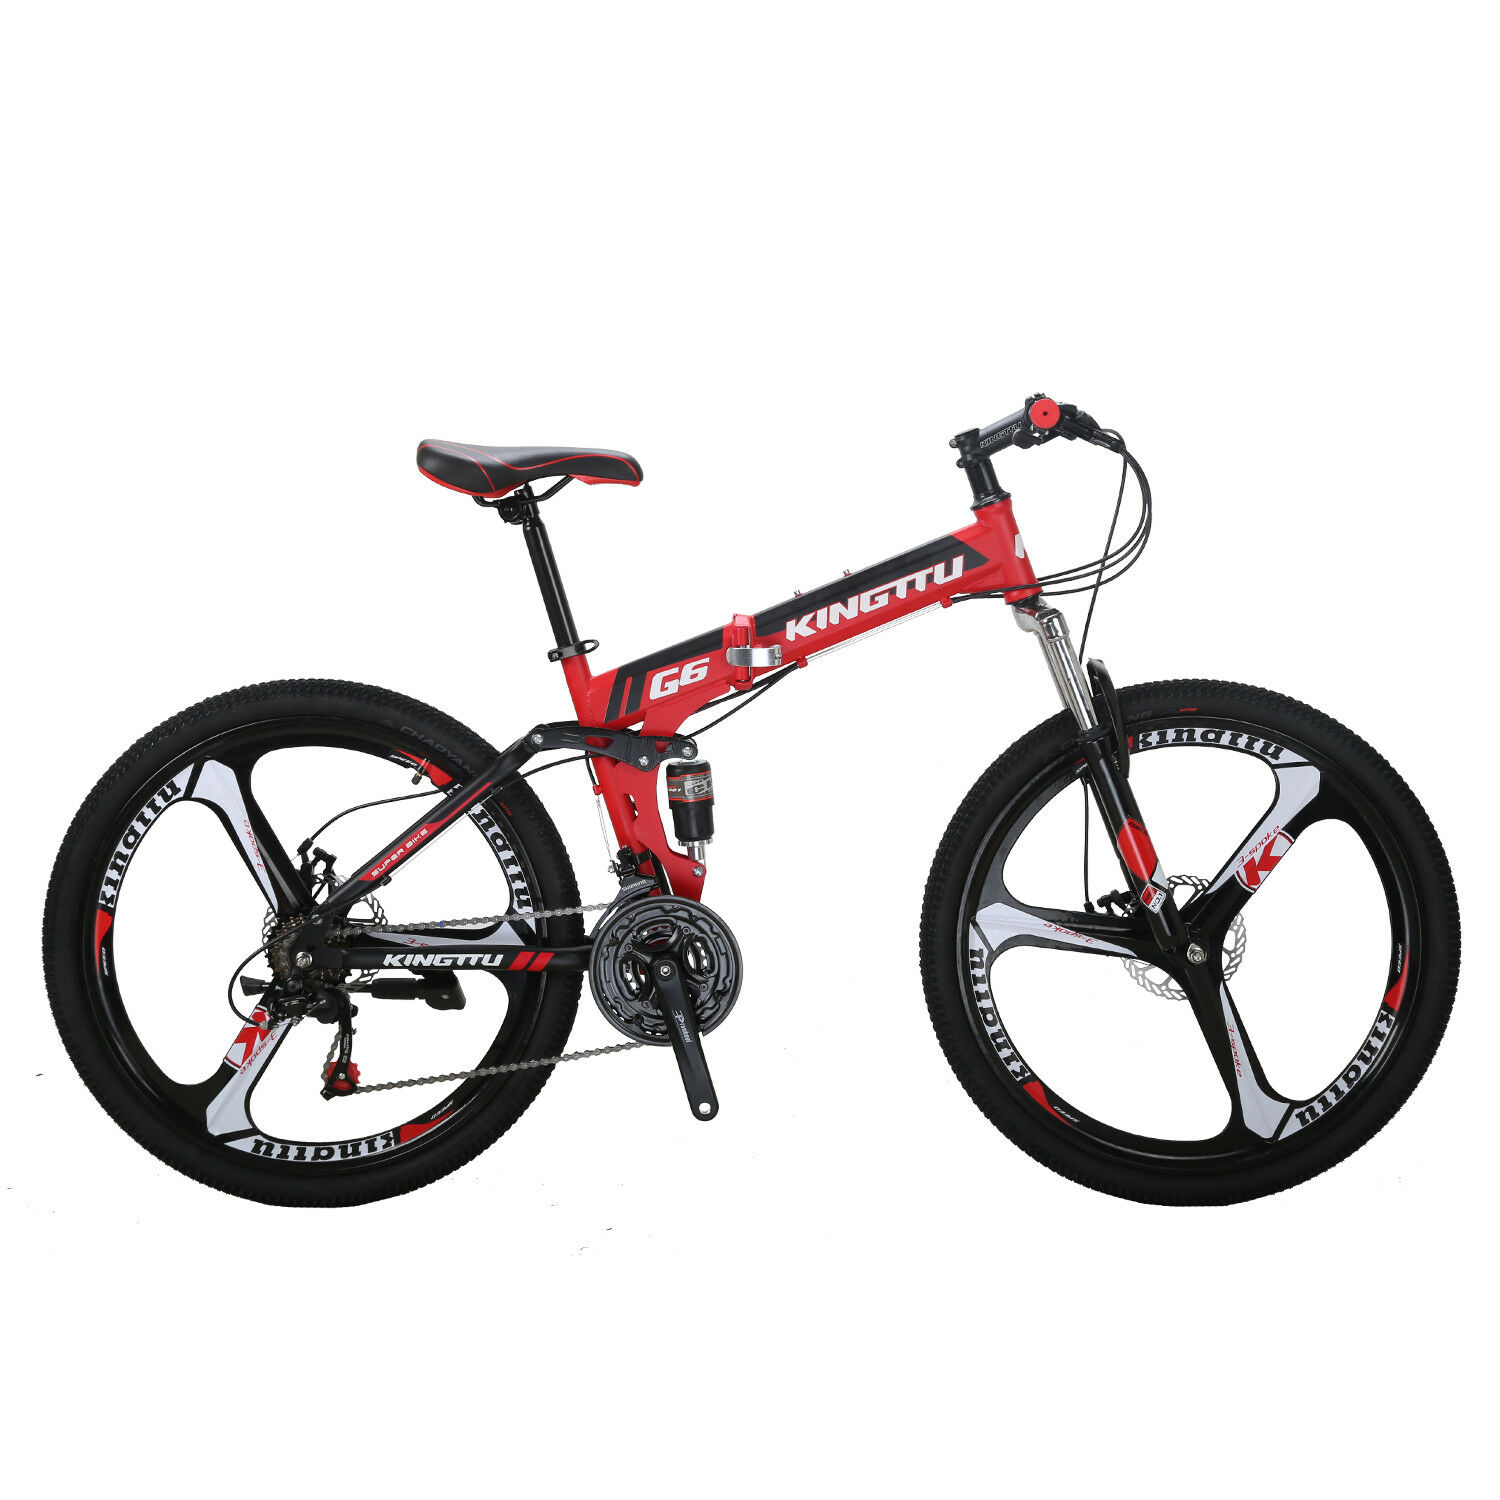 G6 26  Folding Mountain Bike Full Suspension Foldable frame 21 Speed Bicycle